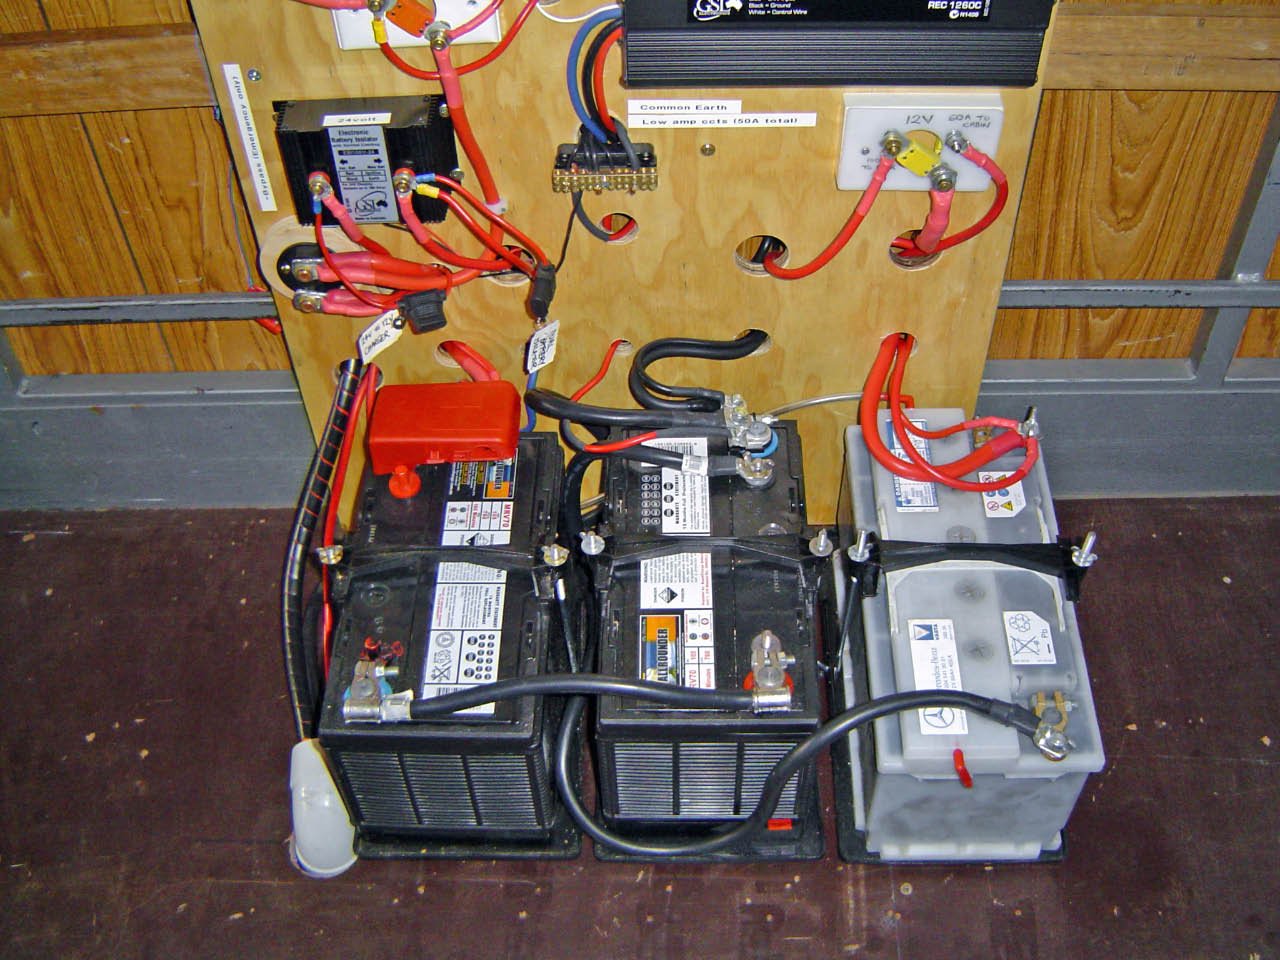 Battery Power - 2 on left are 24V House, 12V House on right